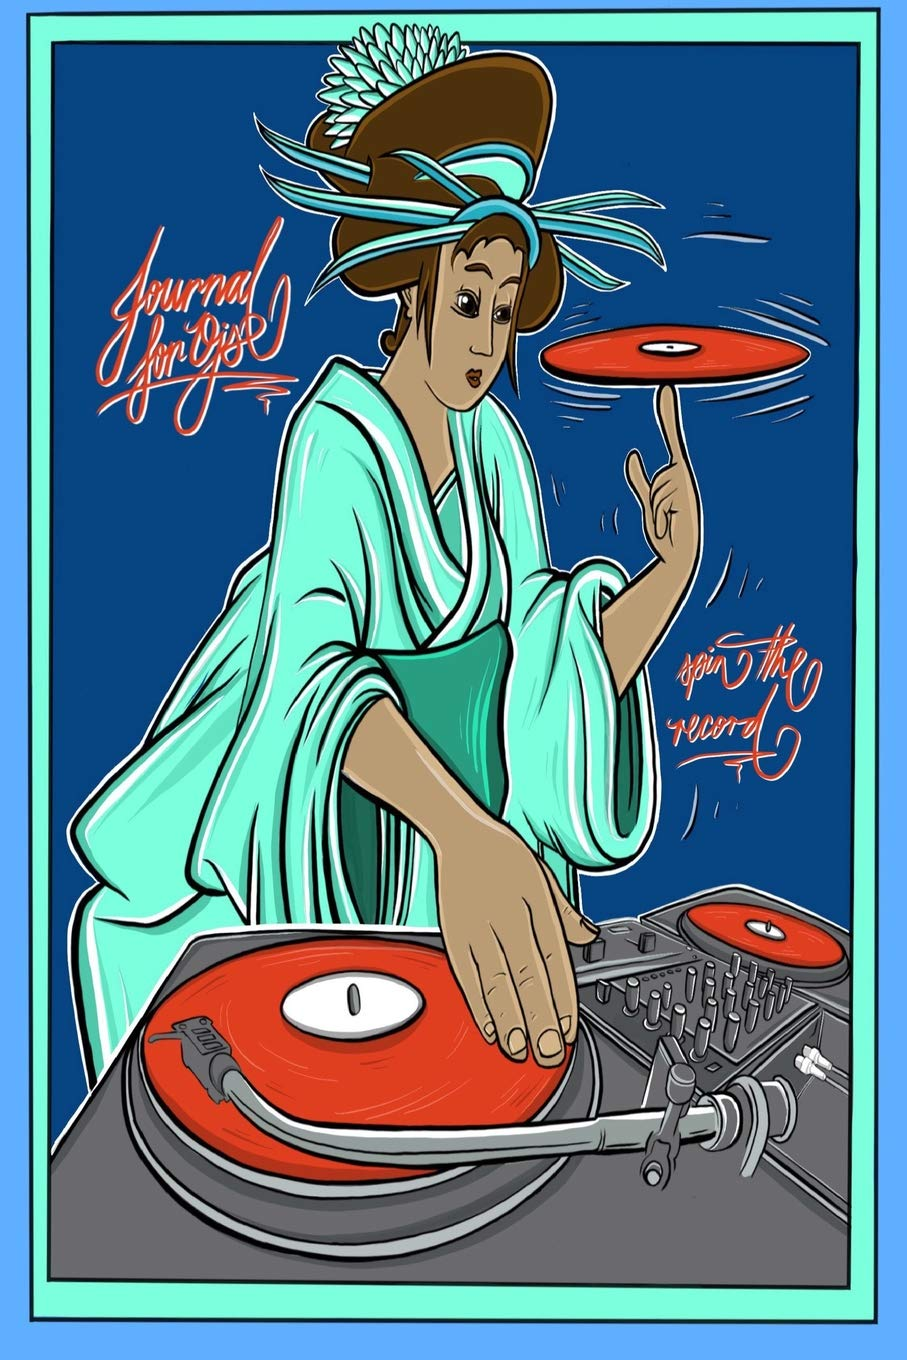 Journal for Djs - Spin the Record: 6x9 Inch A Multi-Purpose Lined Journal Designed with Djs in mind! - Keep the Record Spinning! - DJ, Turn table, ... lady, Geisha, Original Art,